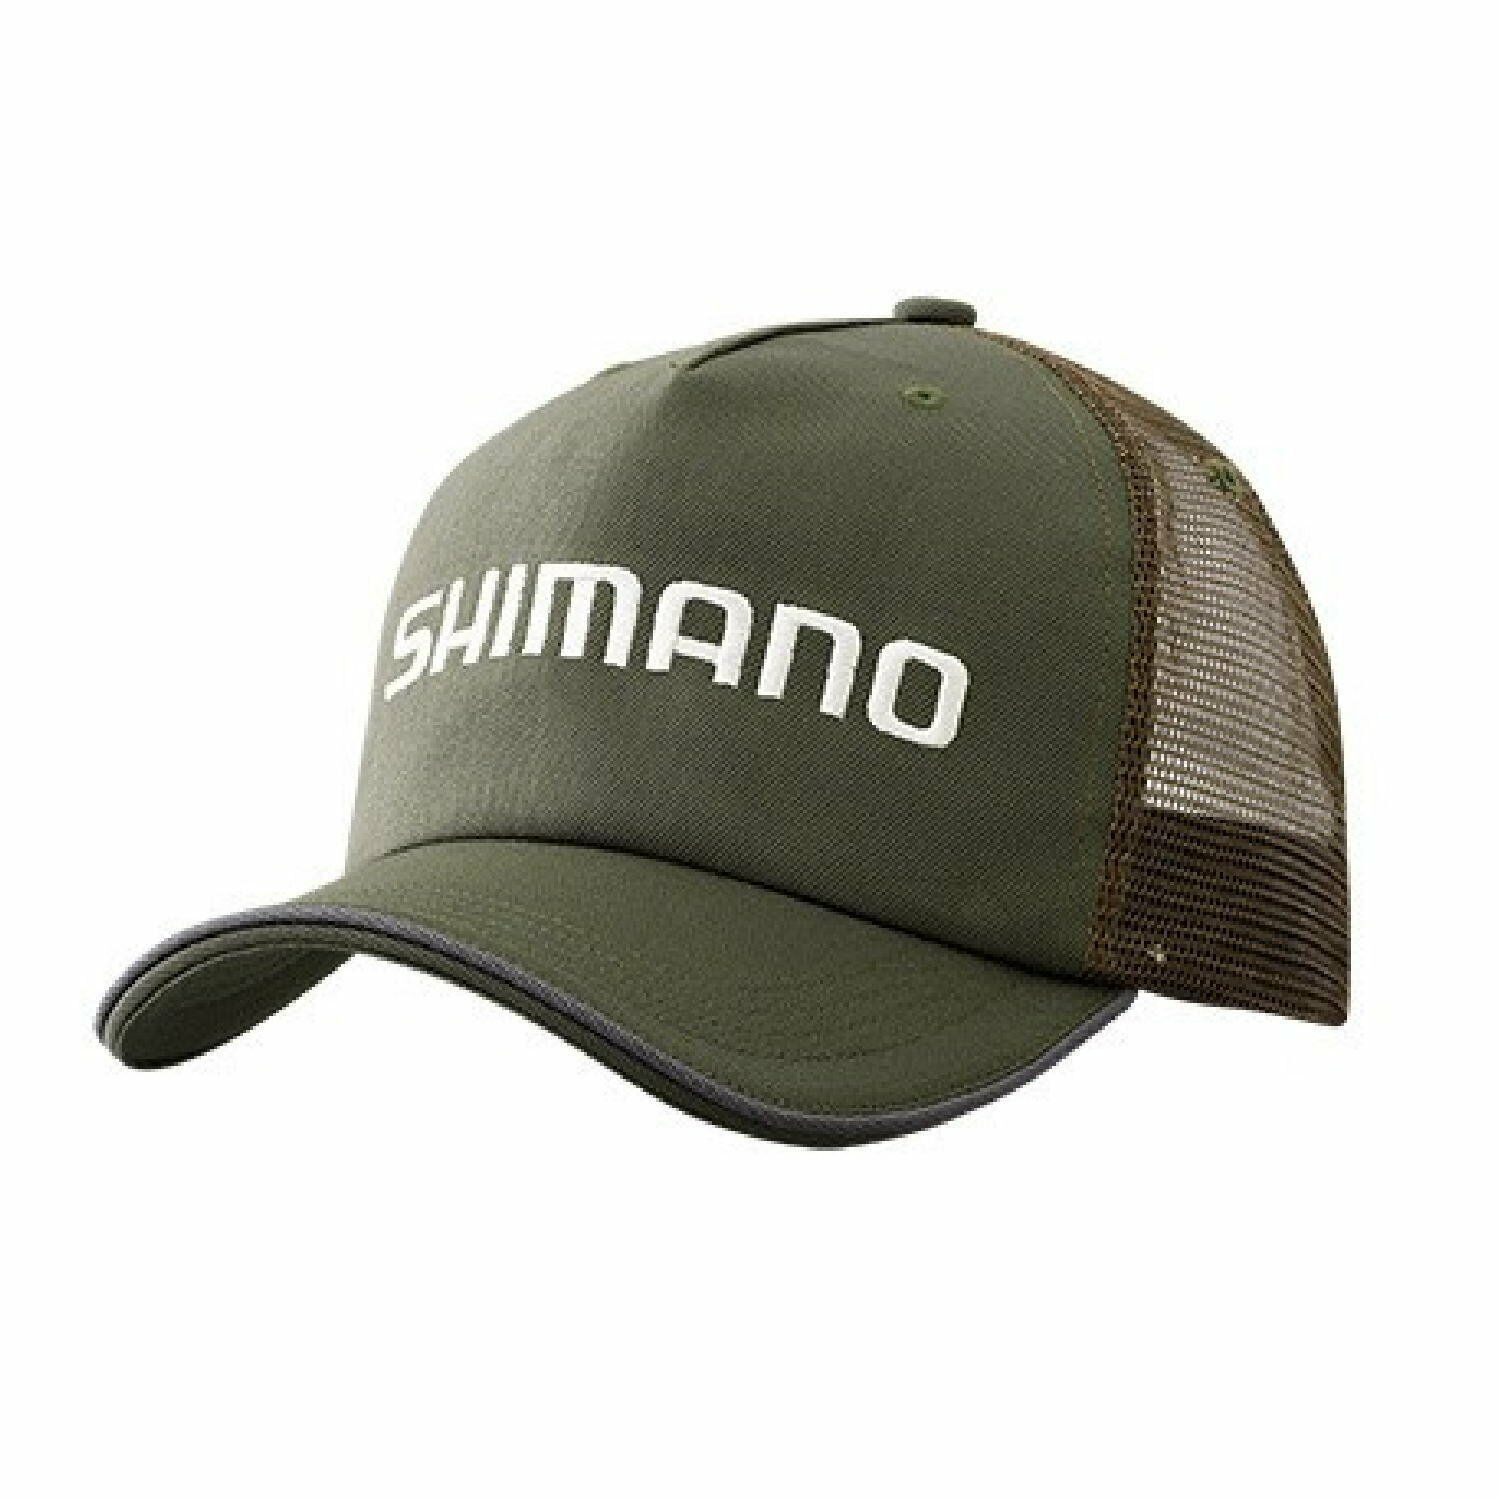 SHIMANO Standard Mesh Fishing Cap CA-042R KHAKI Free size Adjustable  Japan NEW  all products get up to 34% off